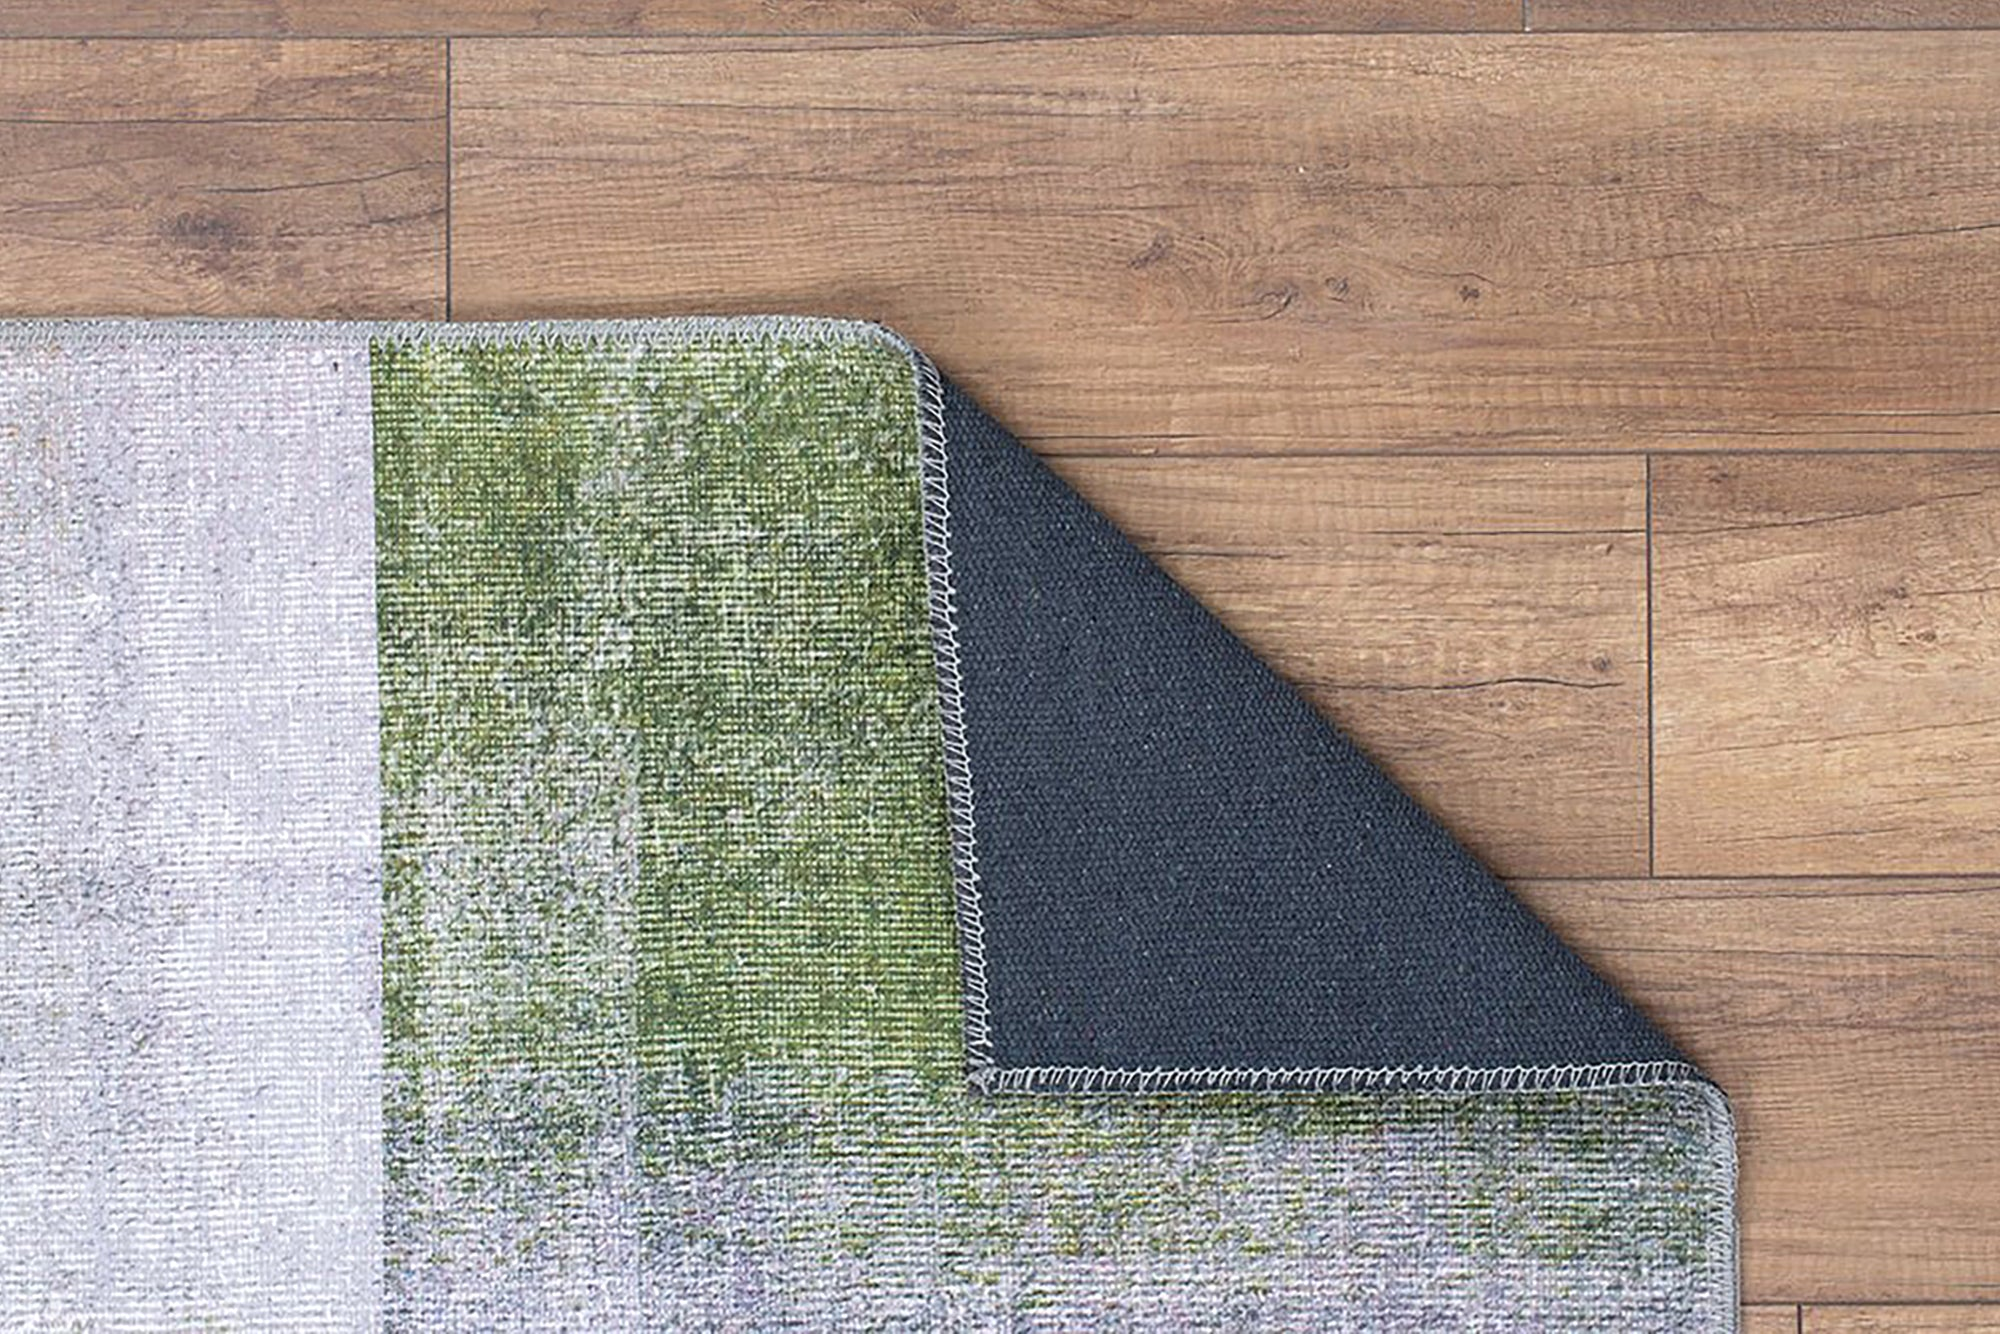 PANA | Contemporary Design, Modern Rug, Vintage looks, Hand-knotted texture, Interior decor, Mid century, Gray, Green, Geometric area rug